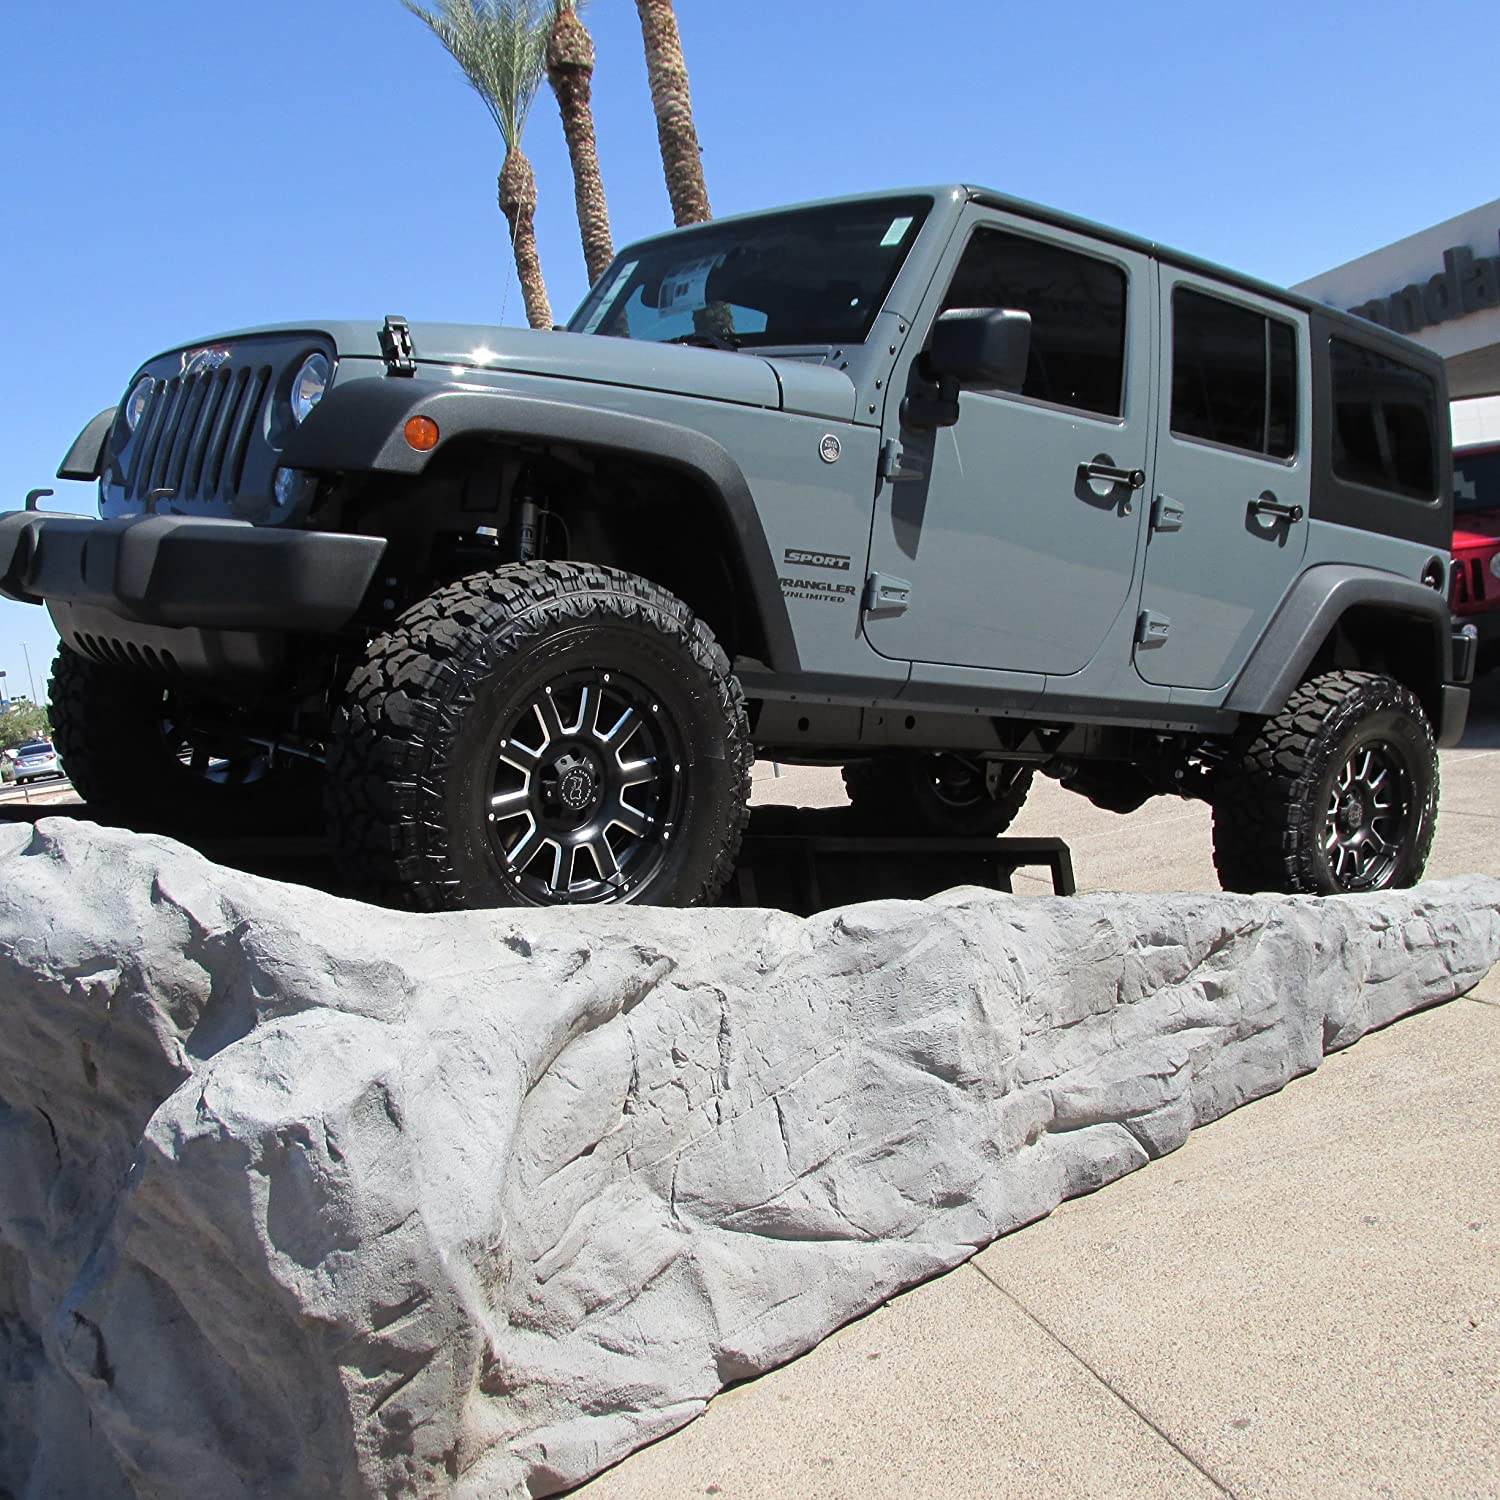 the parts jl popular crawling kits lift extremeterrain predicting xtjk jeep wooleys most wrangler